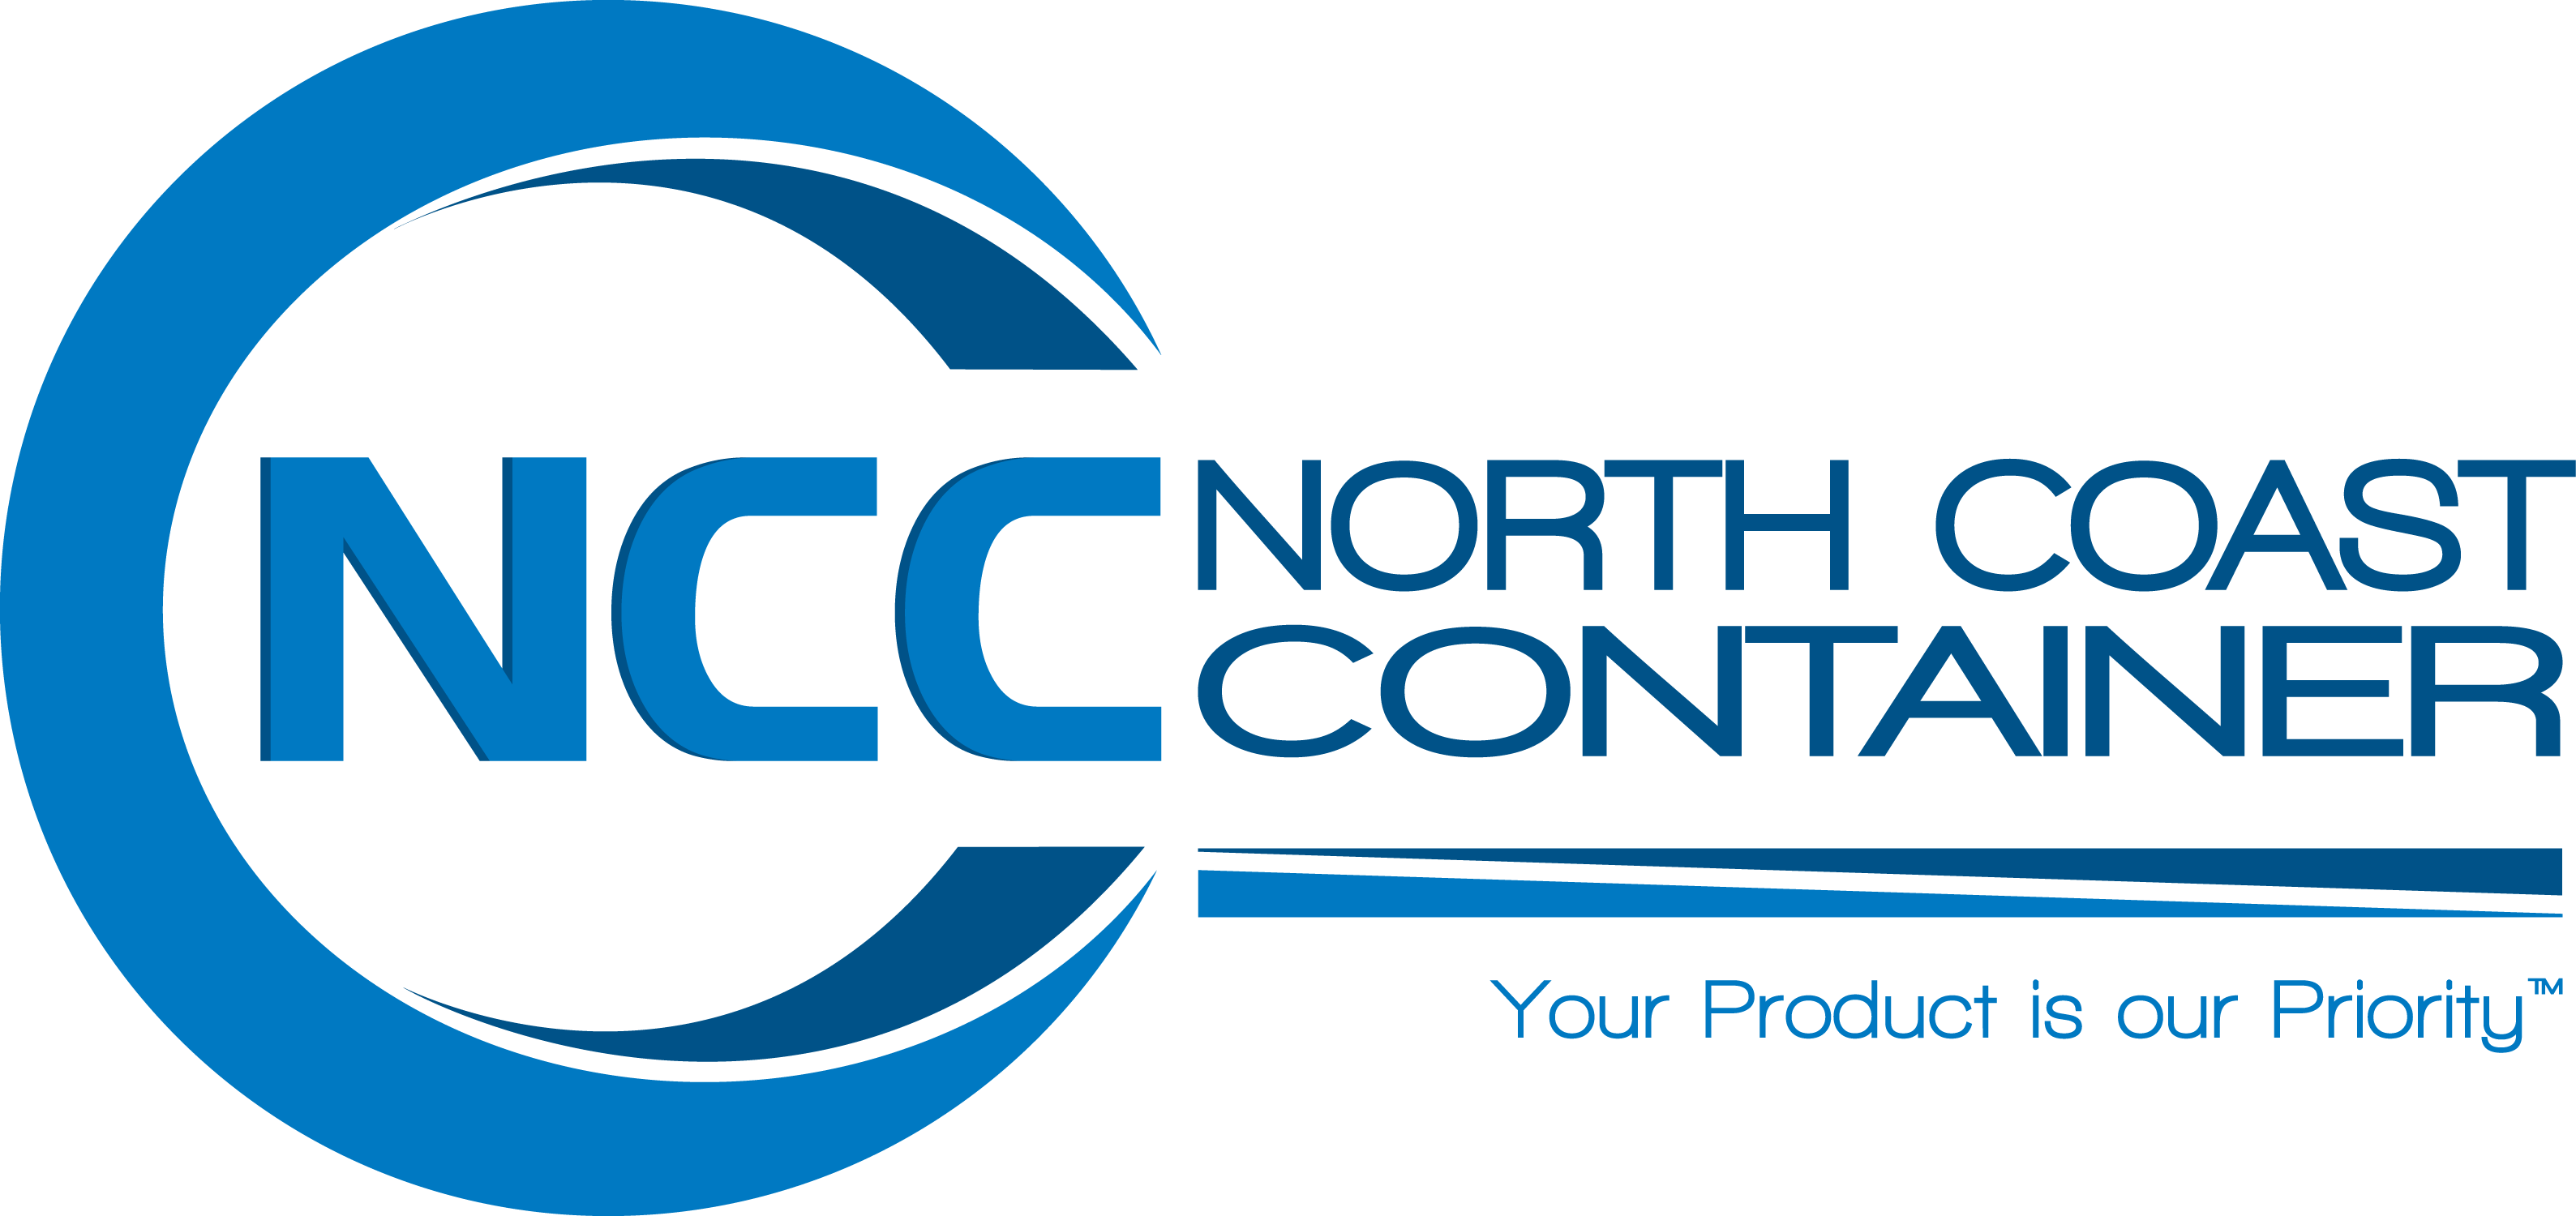 North Coast Container Corporation